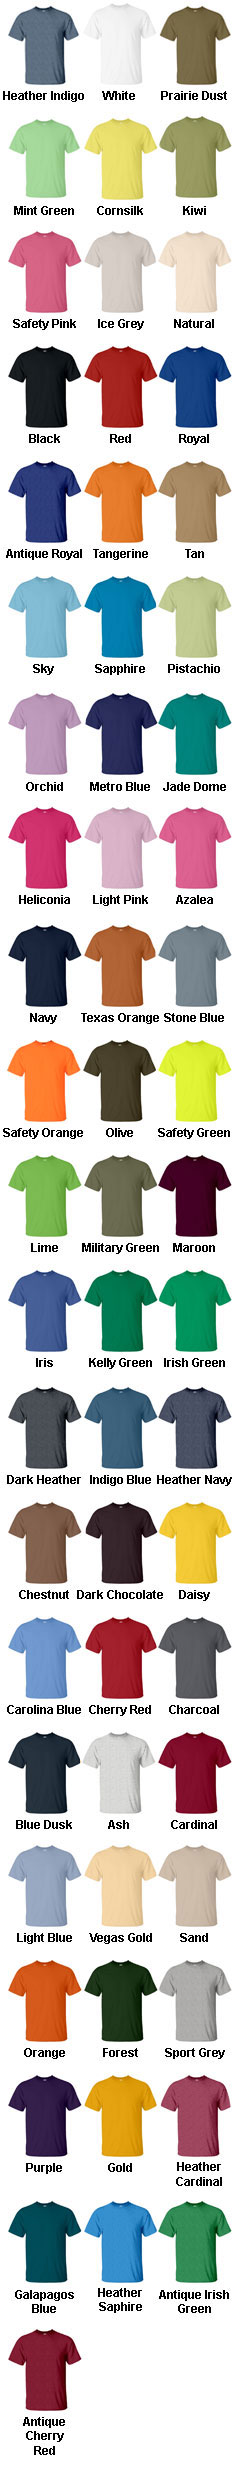 Unisex Gildan Adult T-shirt - All Colors